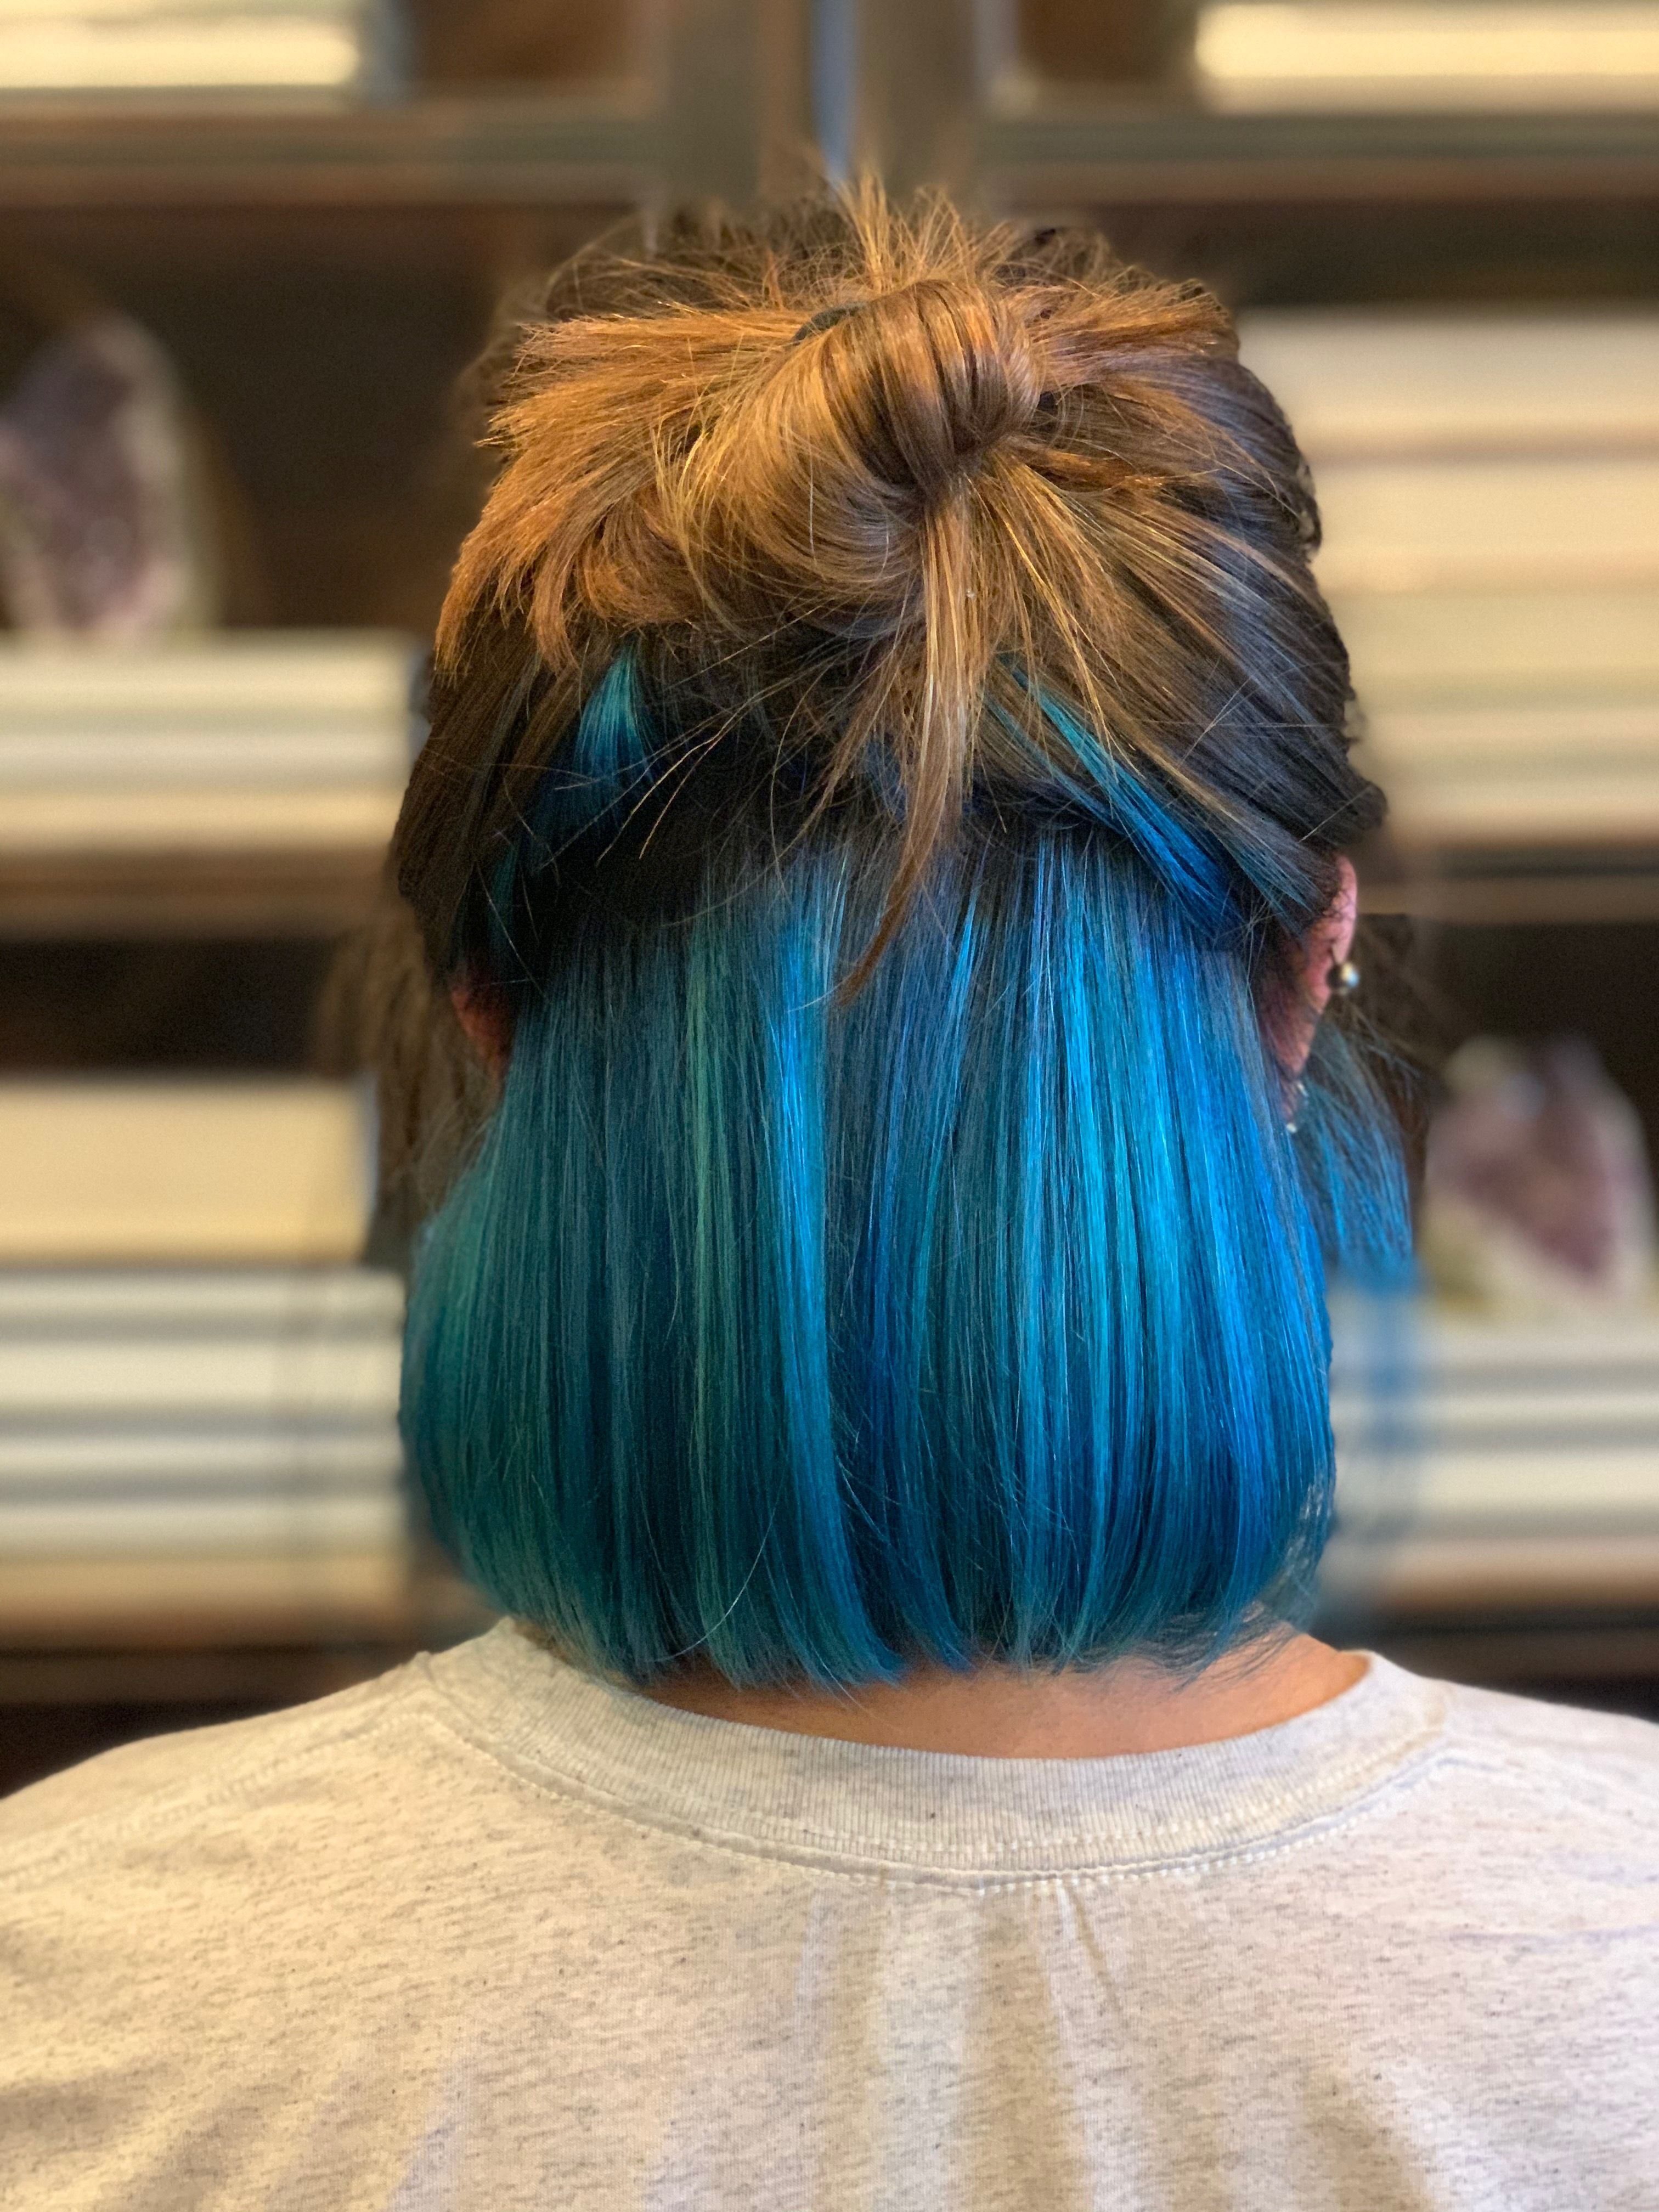 Pin By Jojo On Short Hairstyle In 2020 Hair Inspo Color Hidden Hair Color Hair Color Underneath